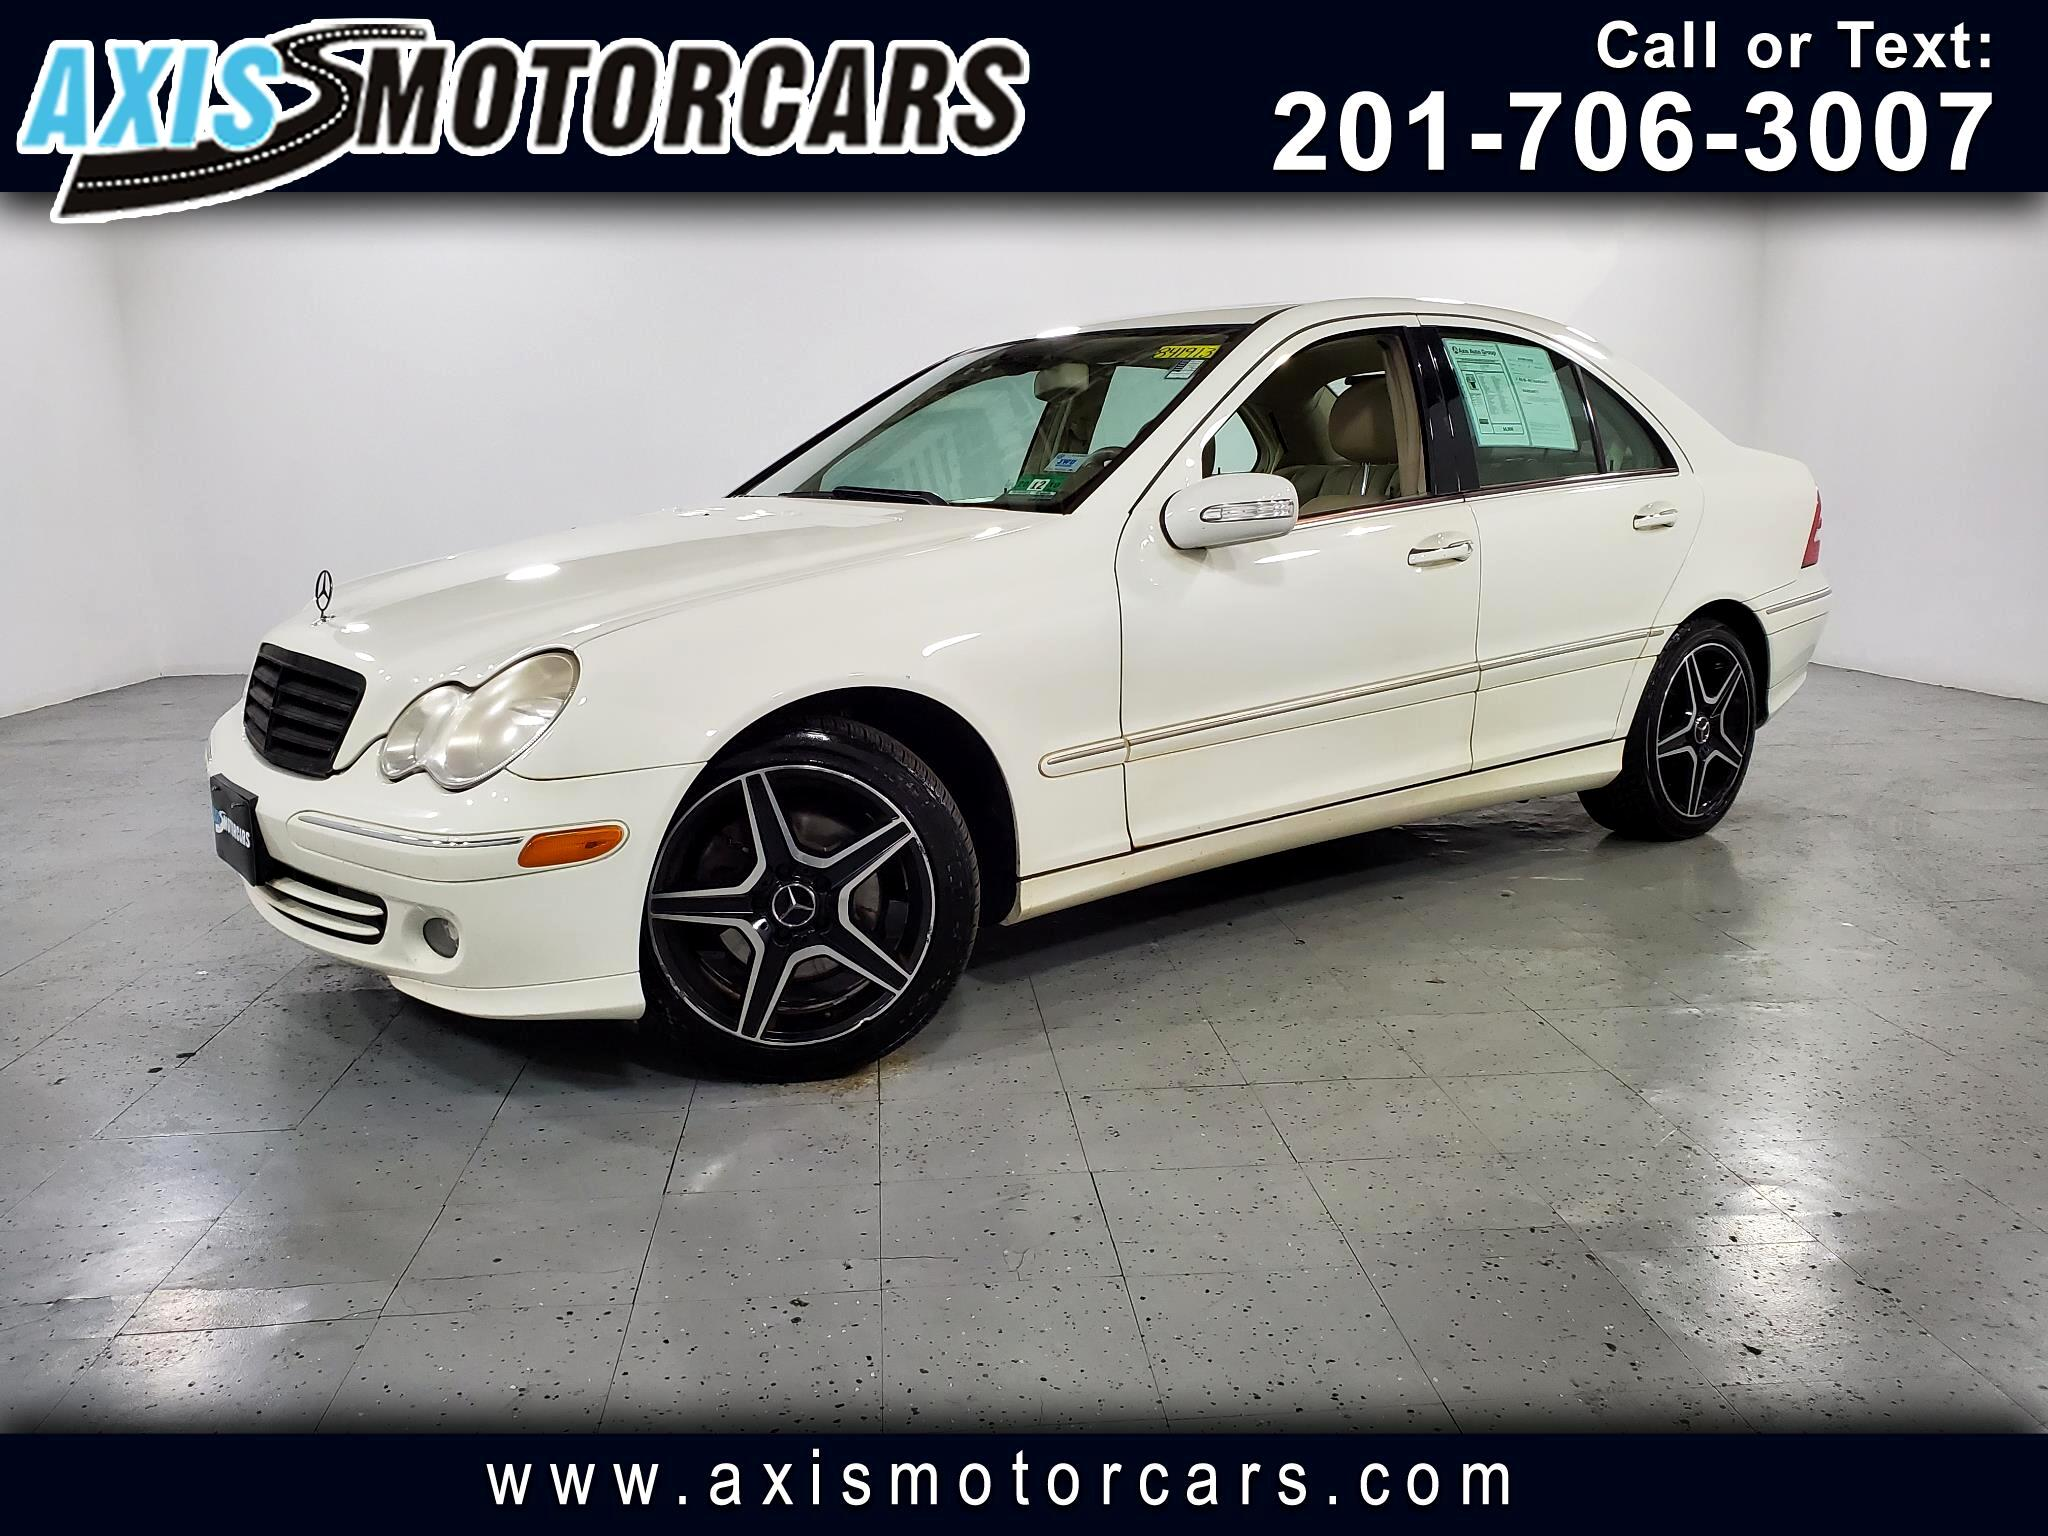 2007 Mercedes-Benz C280 4MATIC w/Sunroof Leather